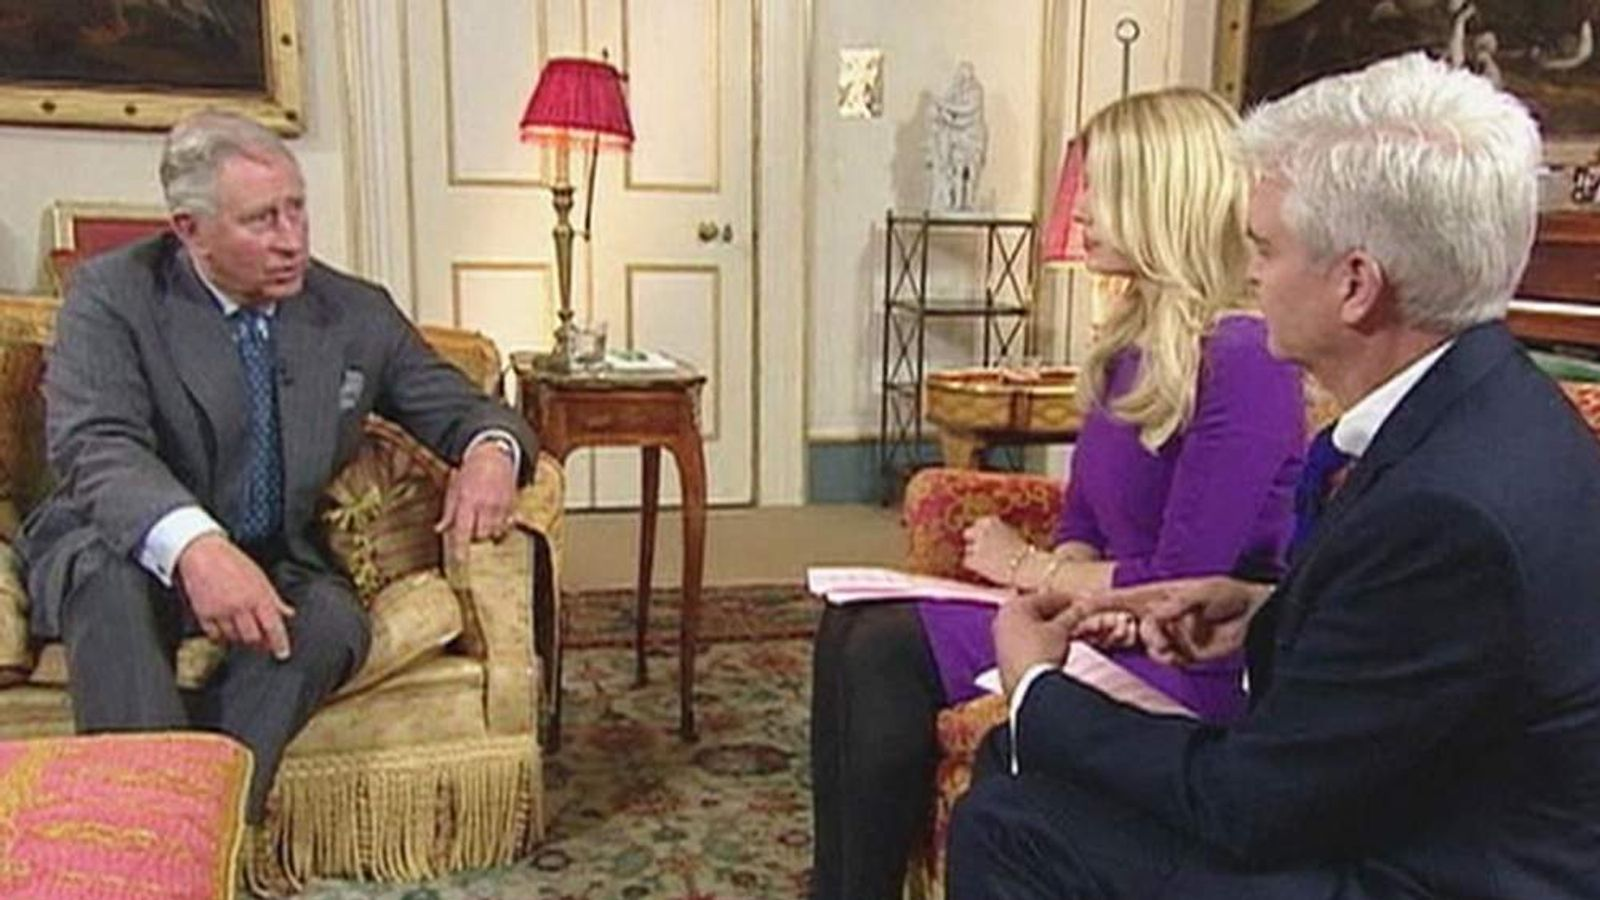 Prince Charles' This Morning interview